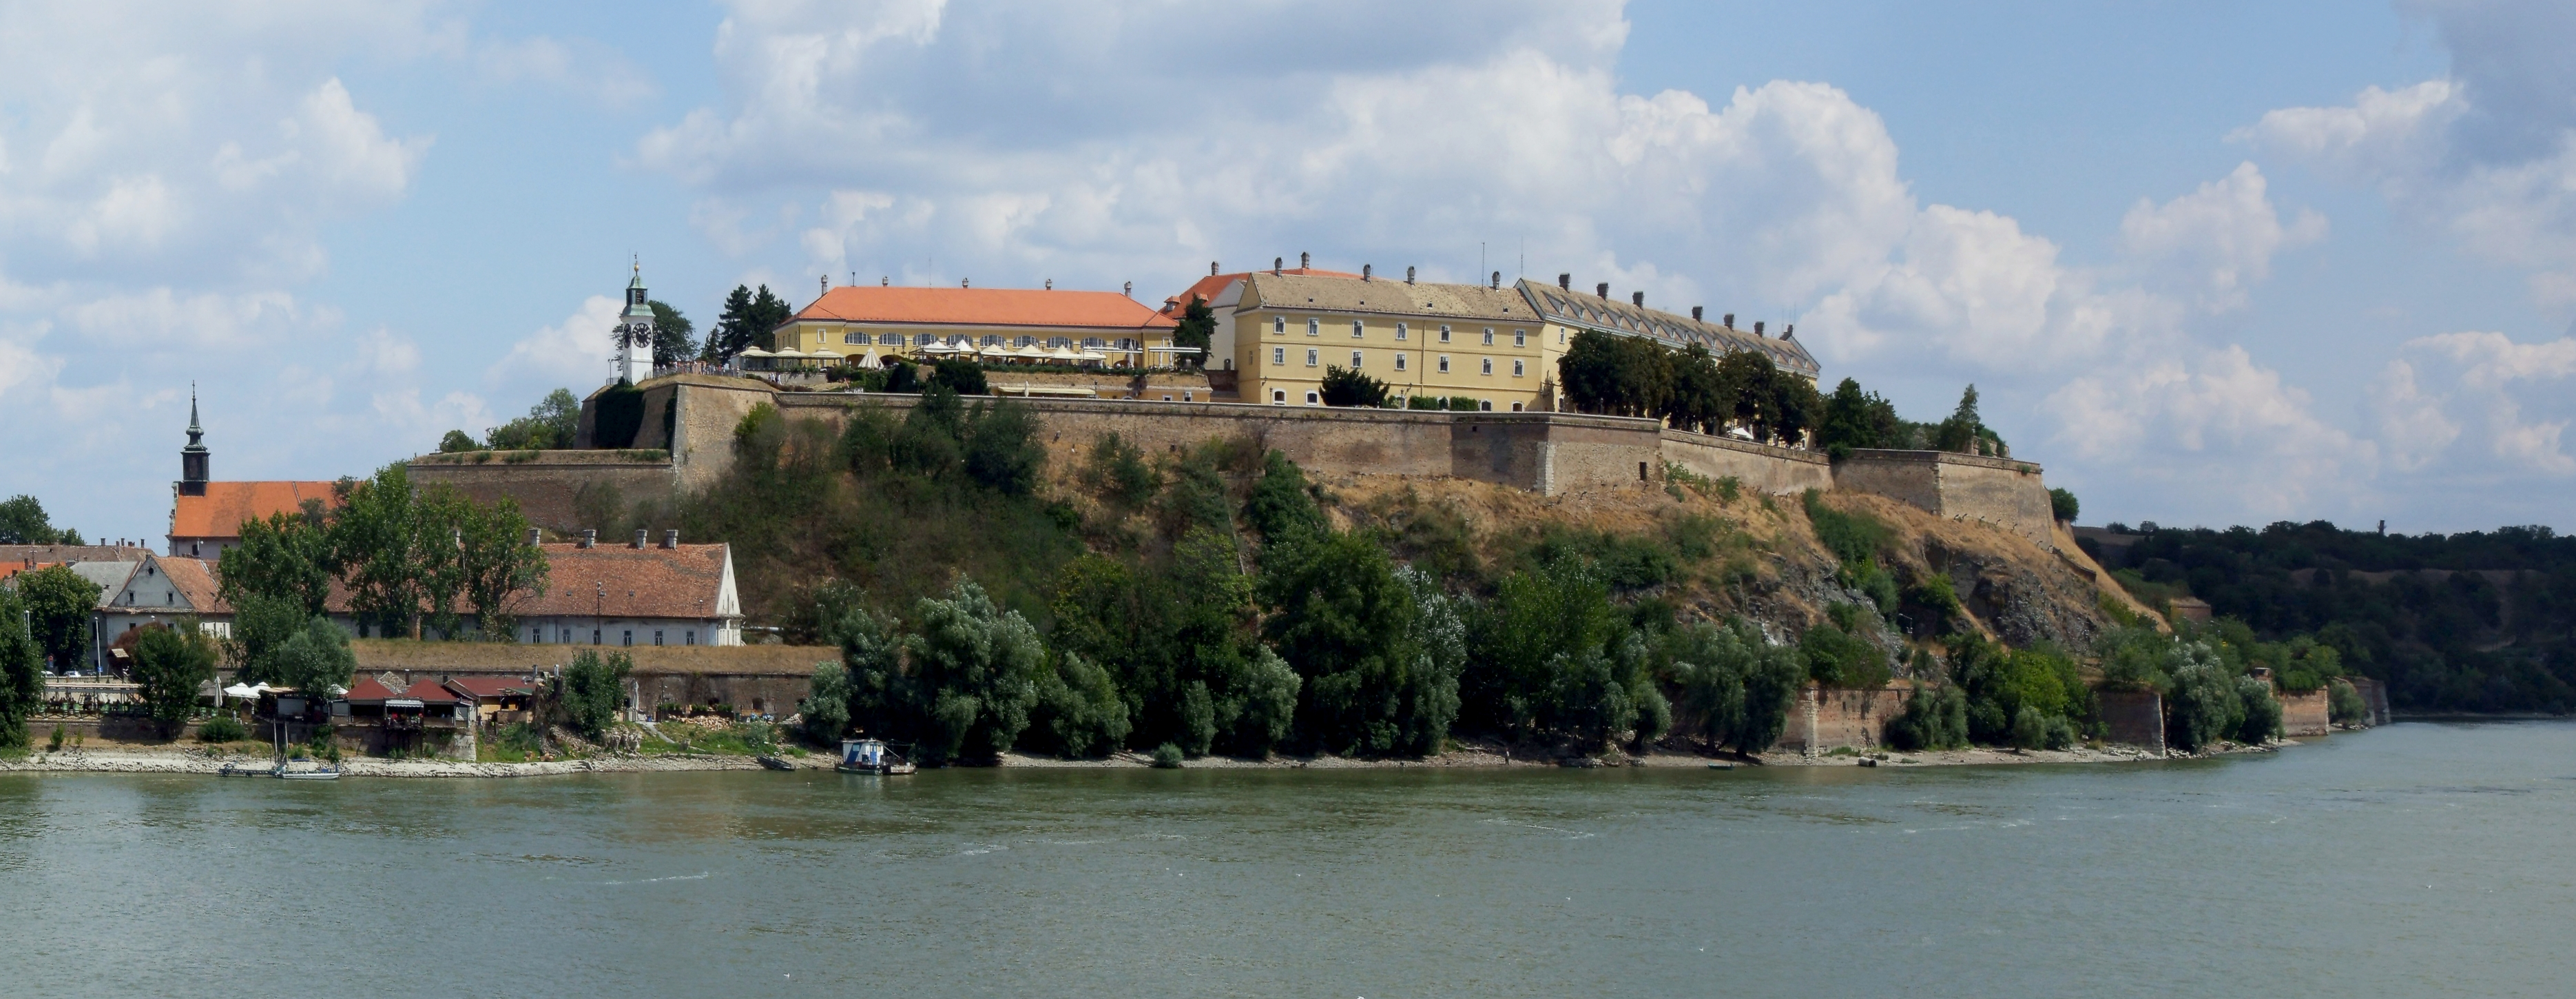 Petrovaradin Serbia  city photos gallery : Description Petrovaradin Fortress Péterváradi vár, Peterwardein ...